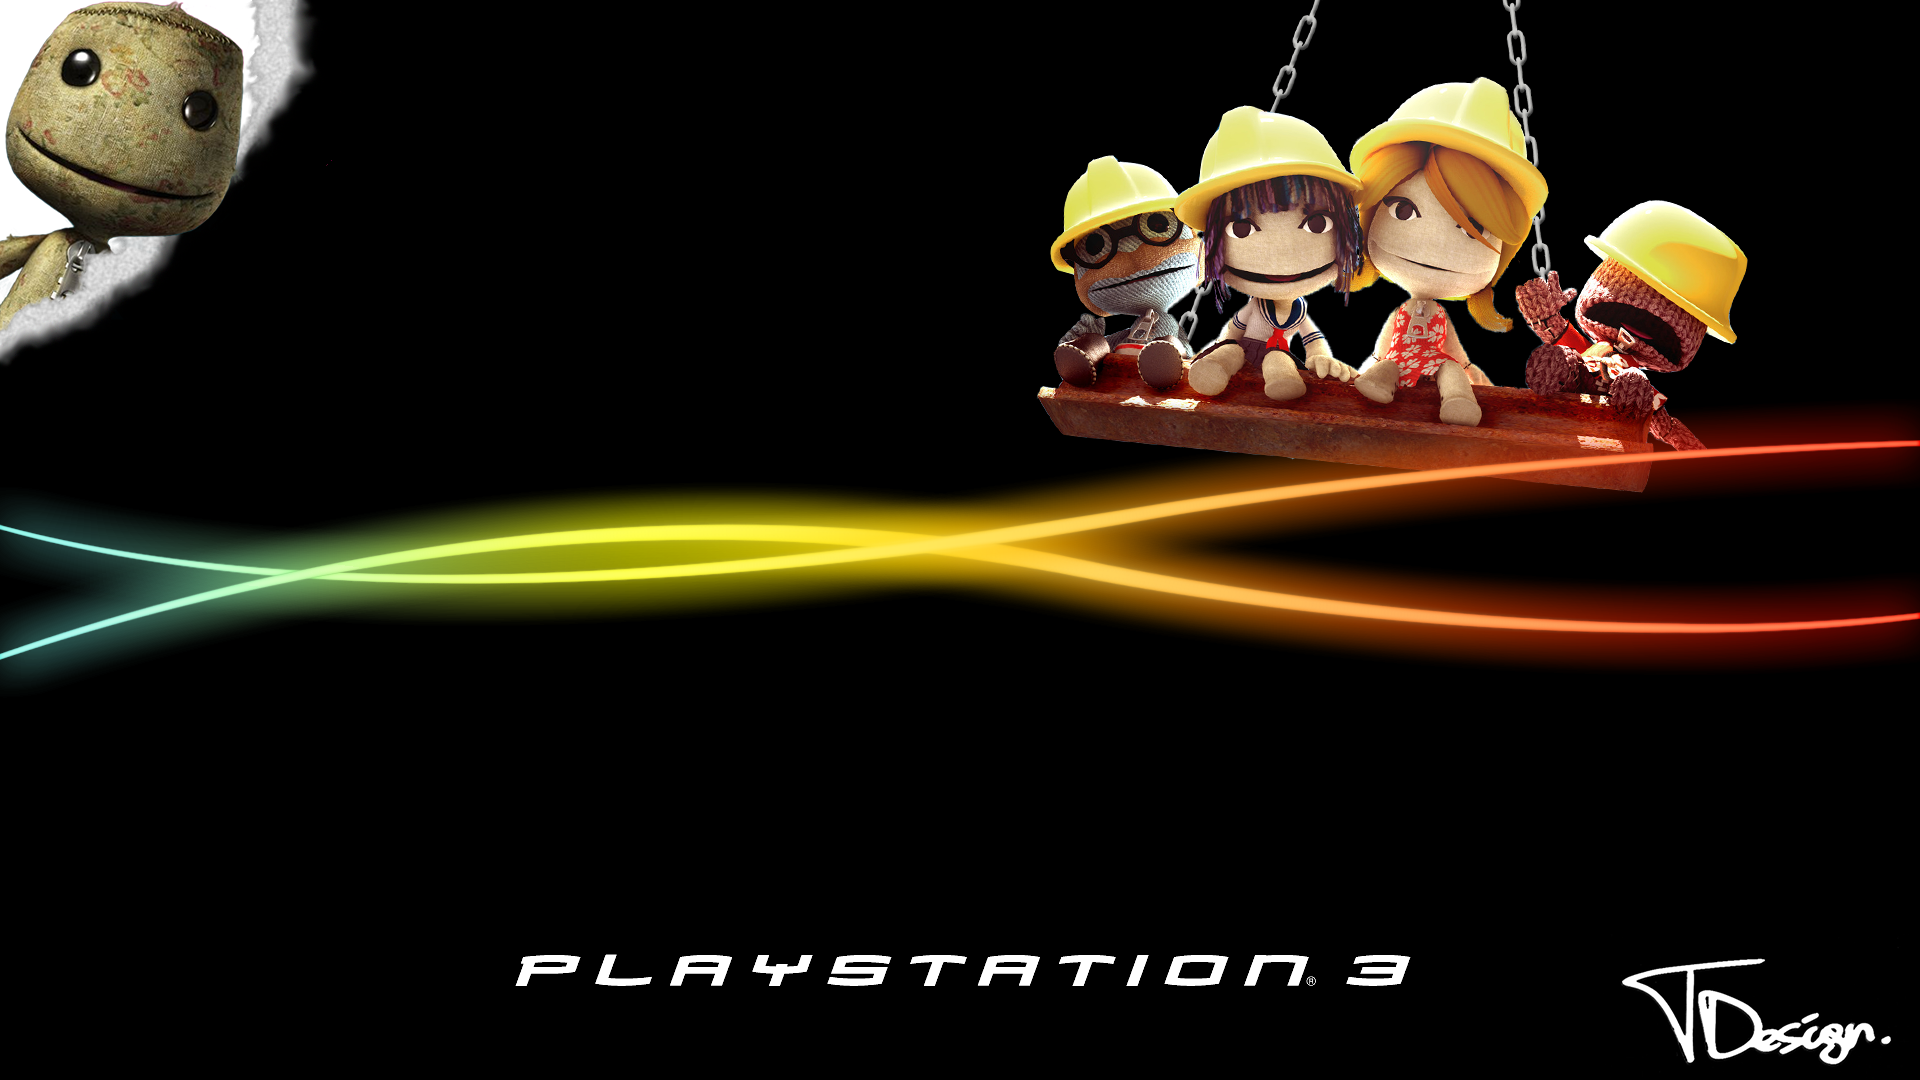 Free Download Ps3 Background Wallpaper 197455 1920x1080